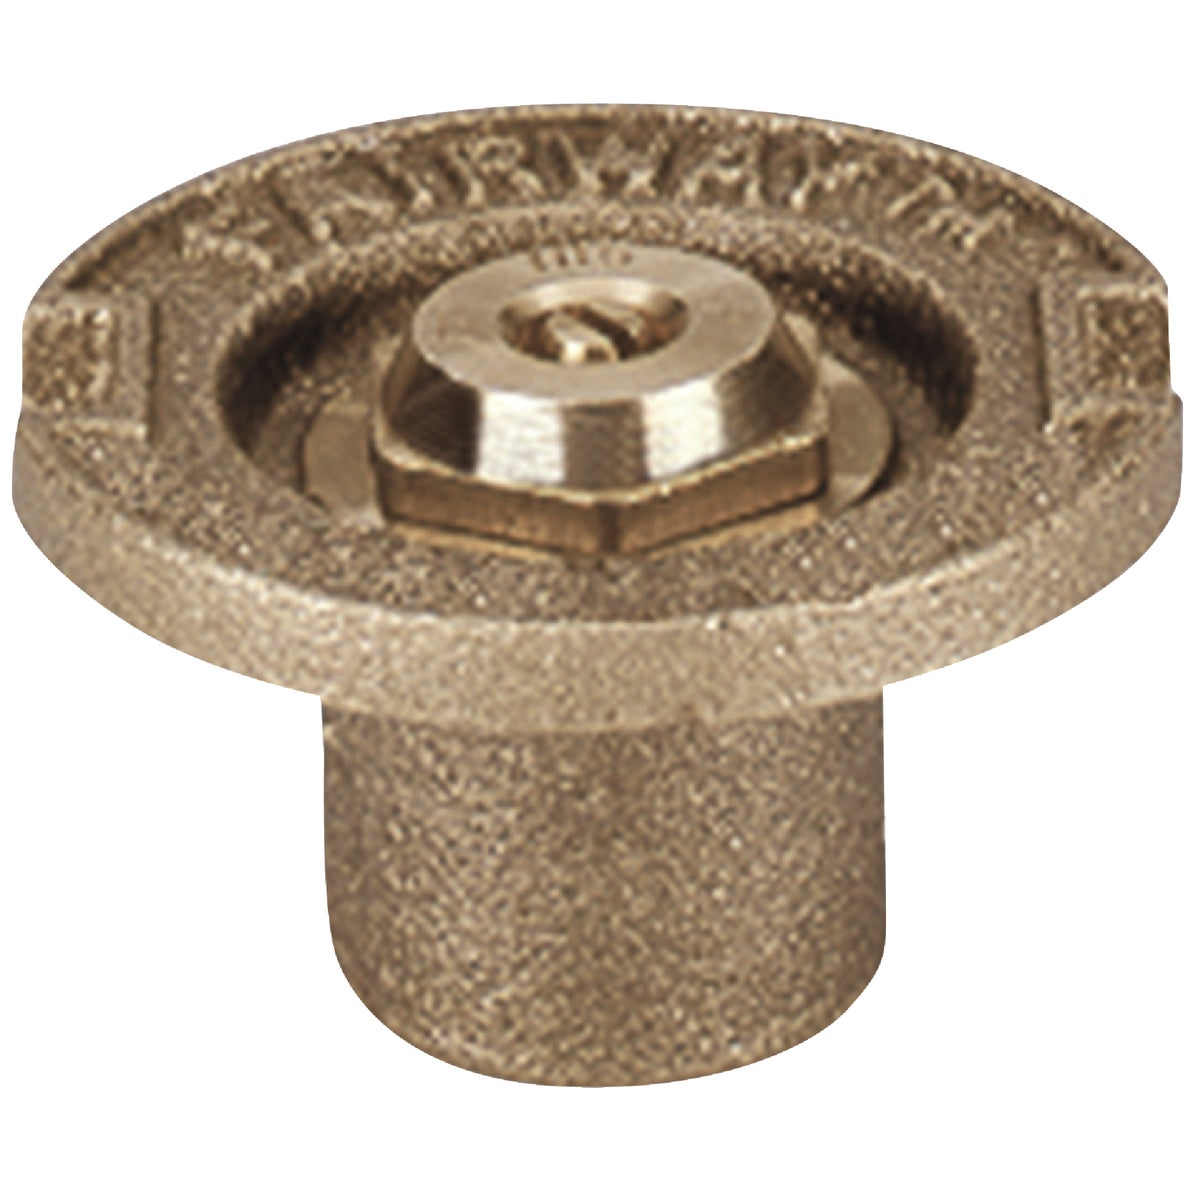 FL BRASS FLUSH SPRINKLER - IF7F by Champion Arrowhead